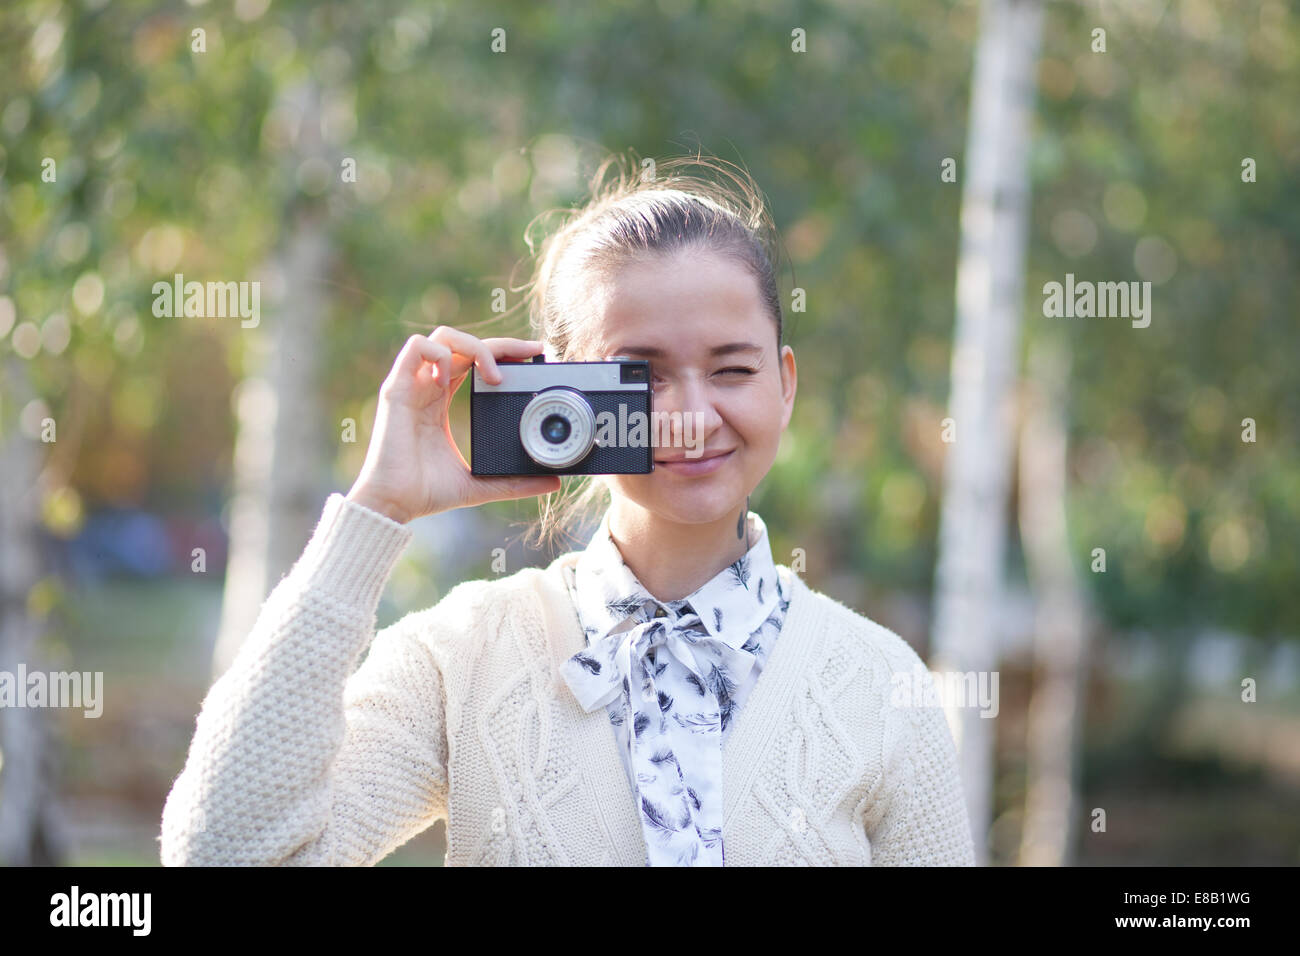 Hipster girl shooting on film camera outdoor - Stock Image